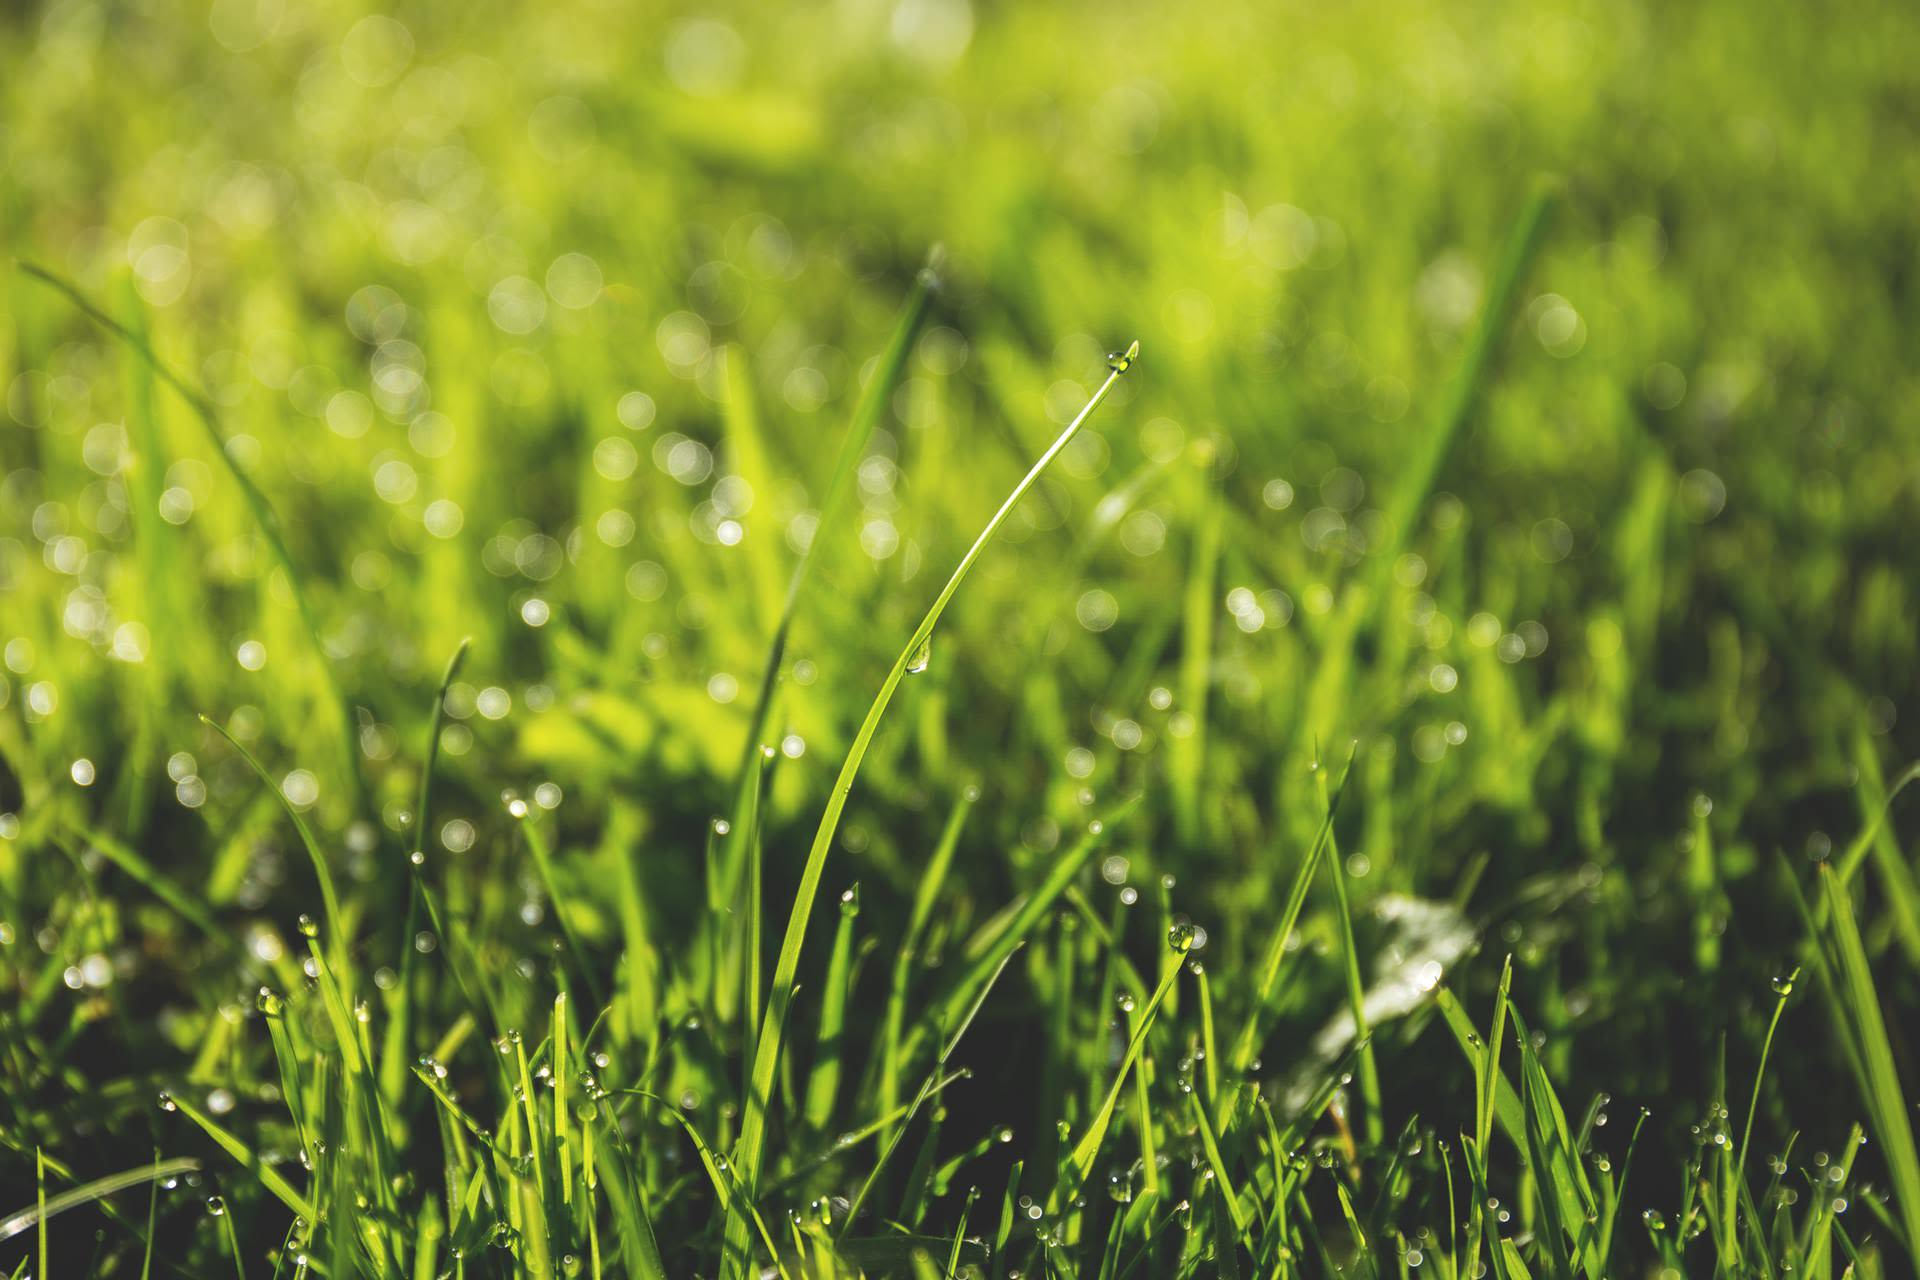 Taking Care of Your Chicago Metro Area Lawn Without Wasting Resources